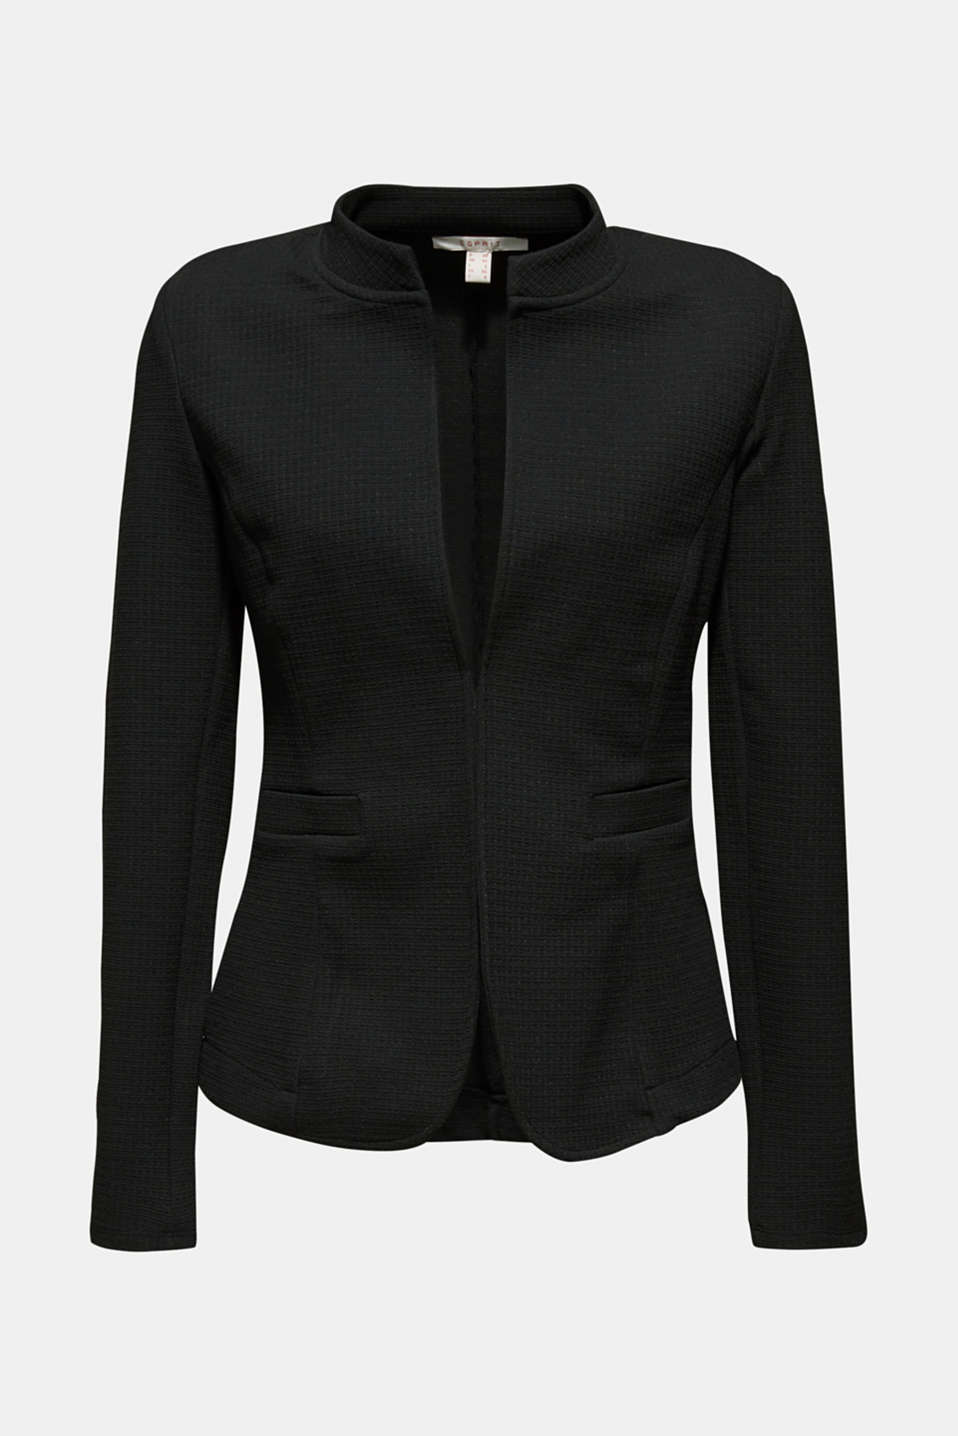 Textured stretch jersey blazer, BLACK, detail image number 5